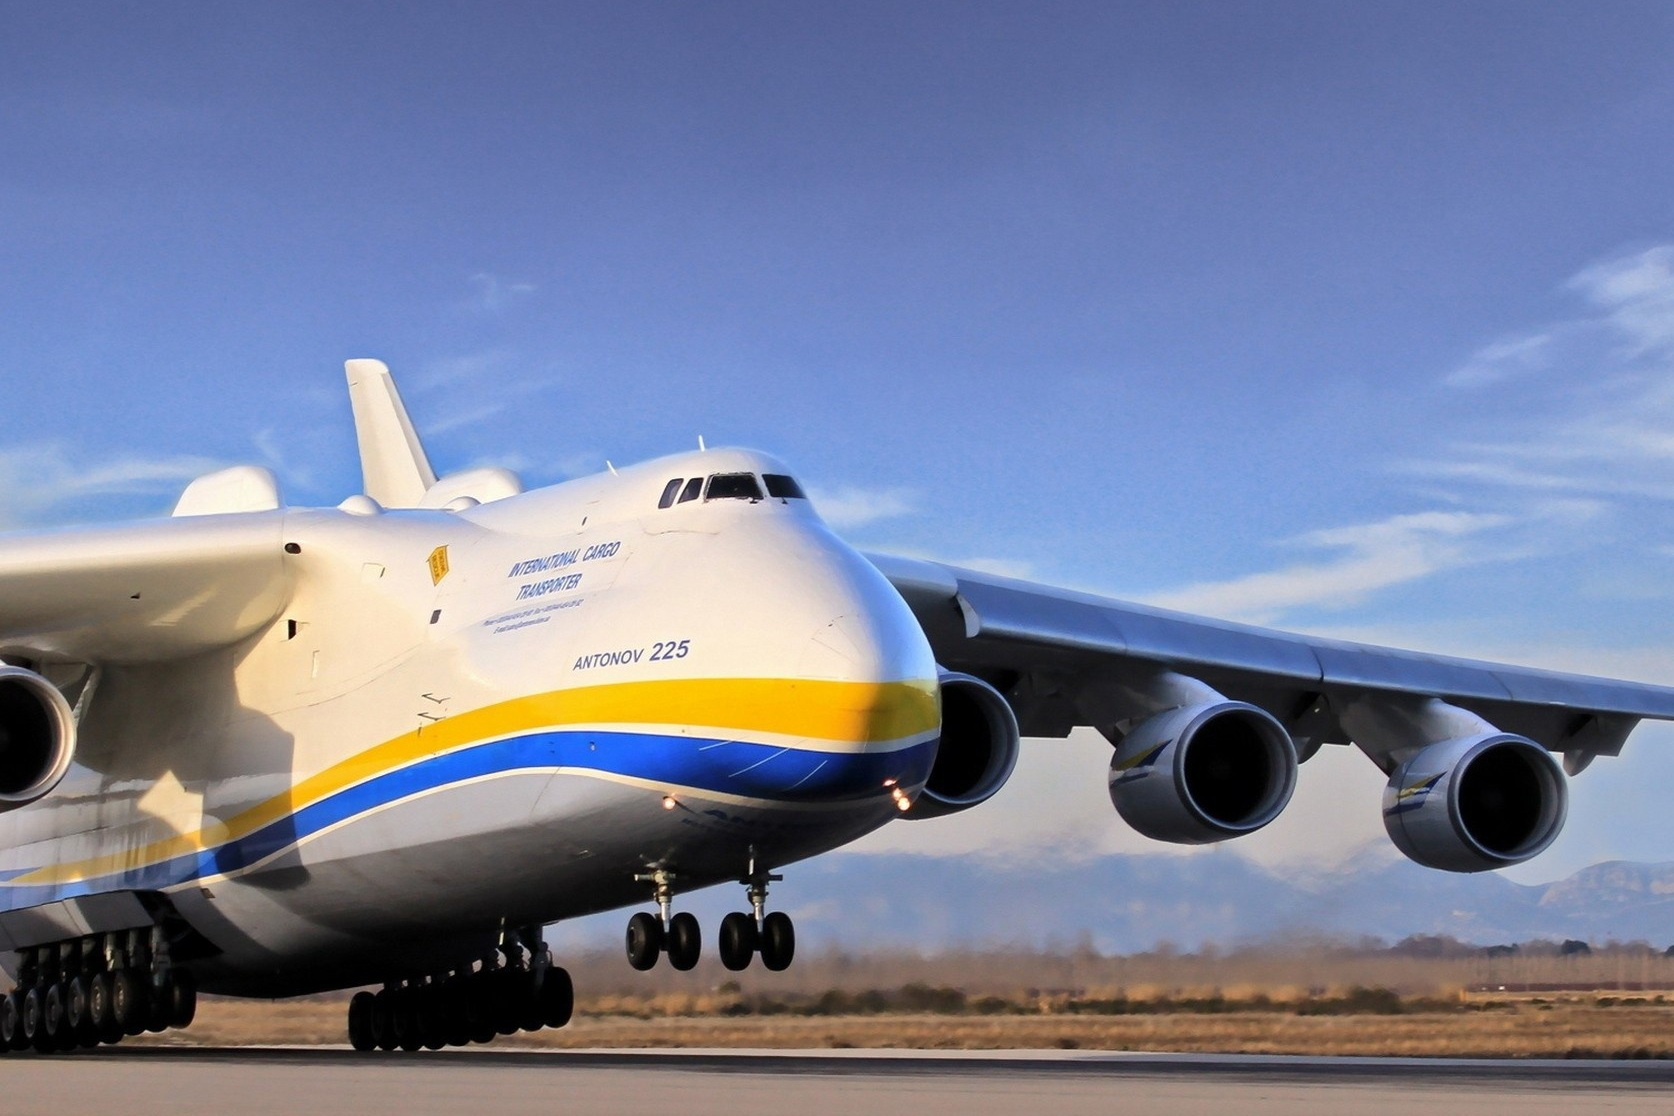 CARGO AIRCRAFT - We offer a comprehensive selection of cargo aircraft, from small aircraft for urgent 'go-now' charters or large freighters for outsize cargo.